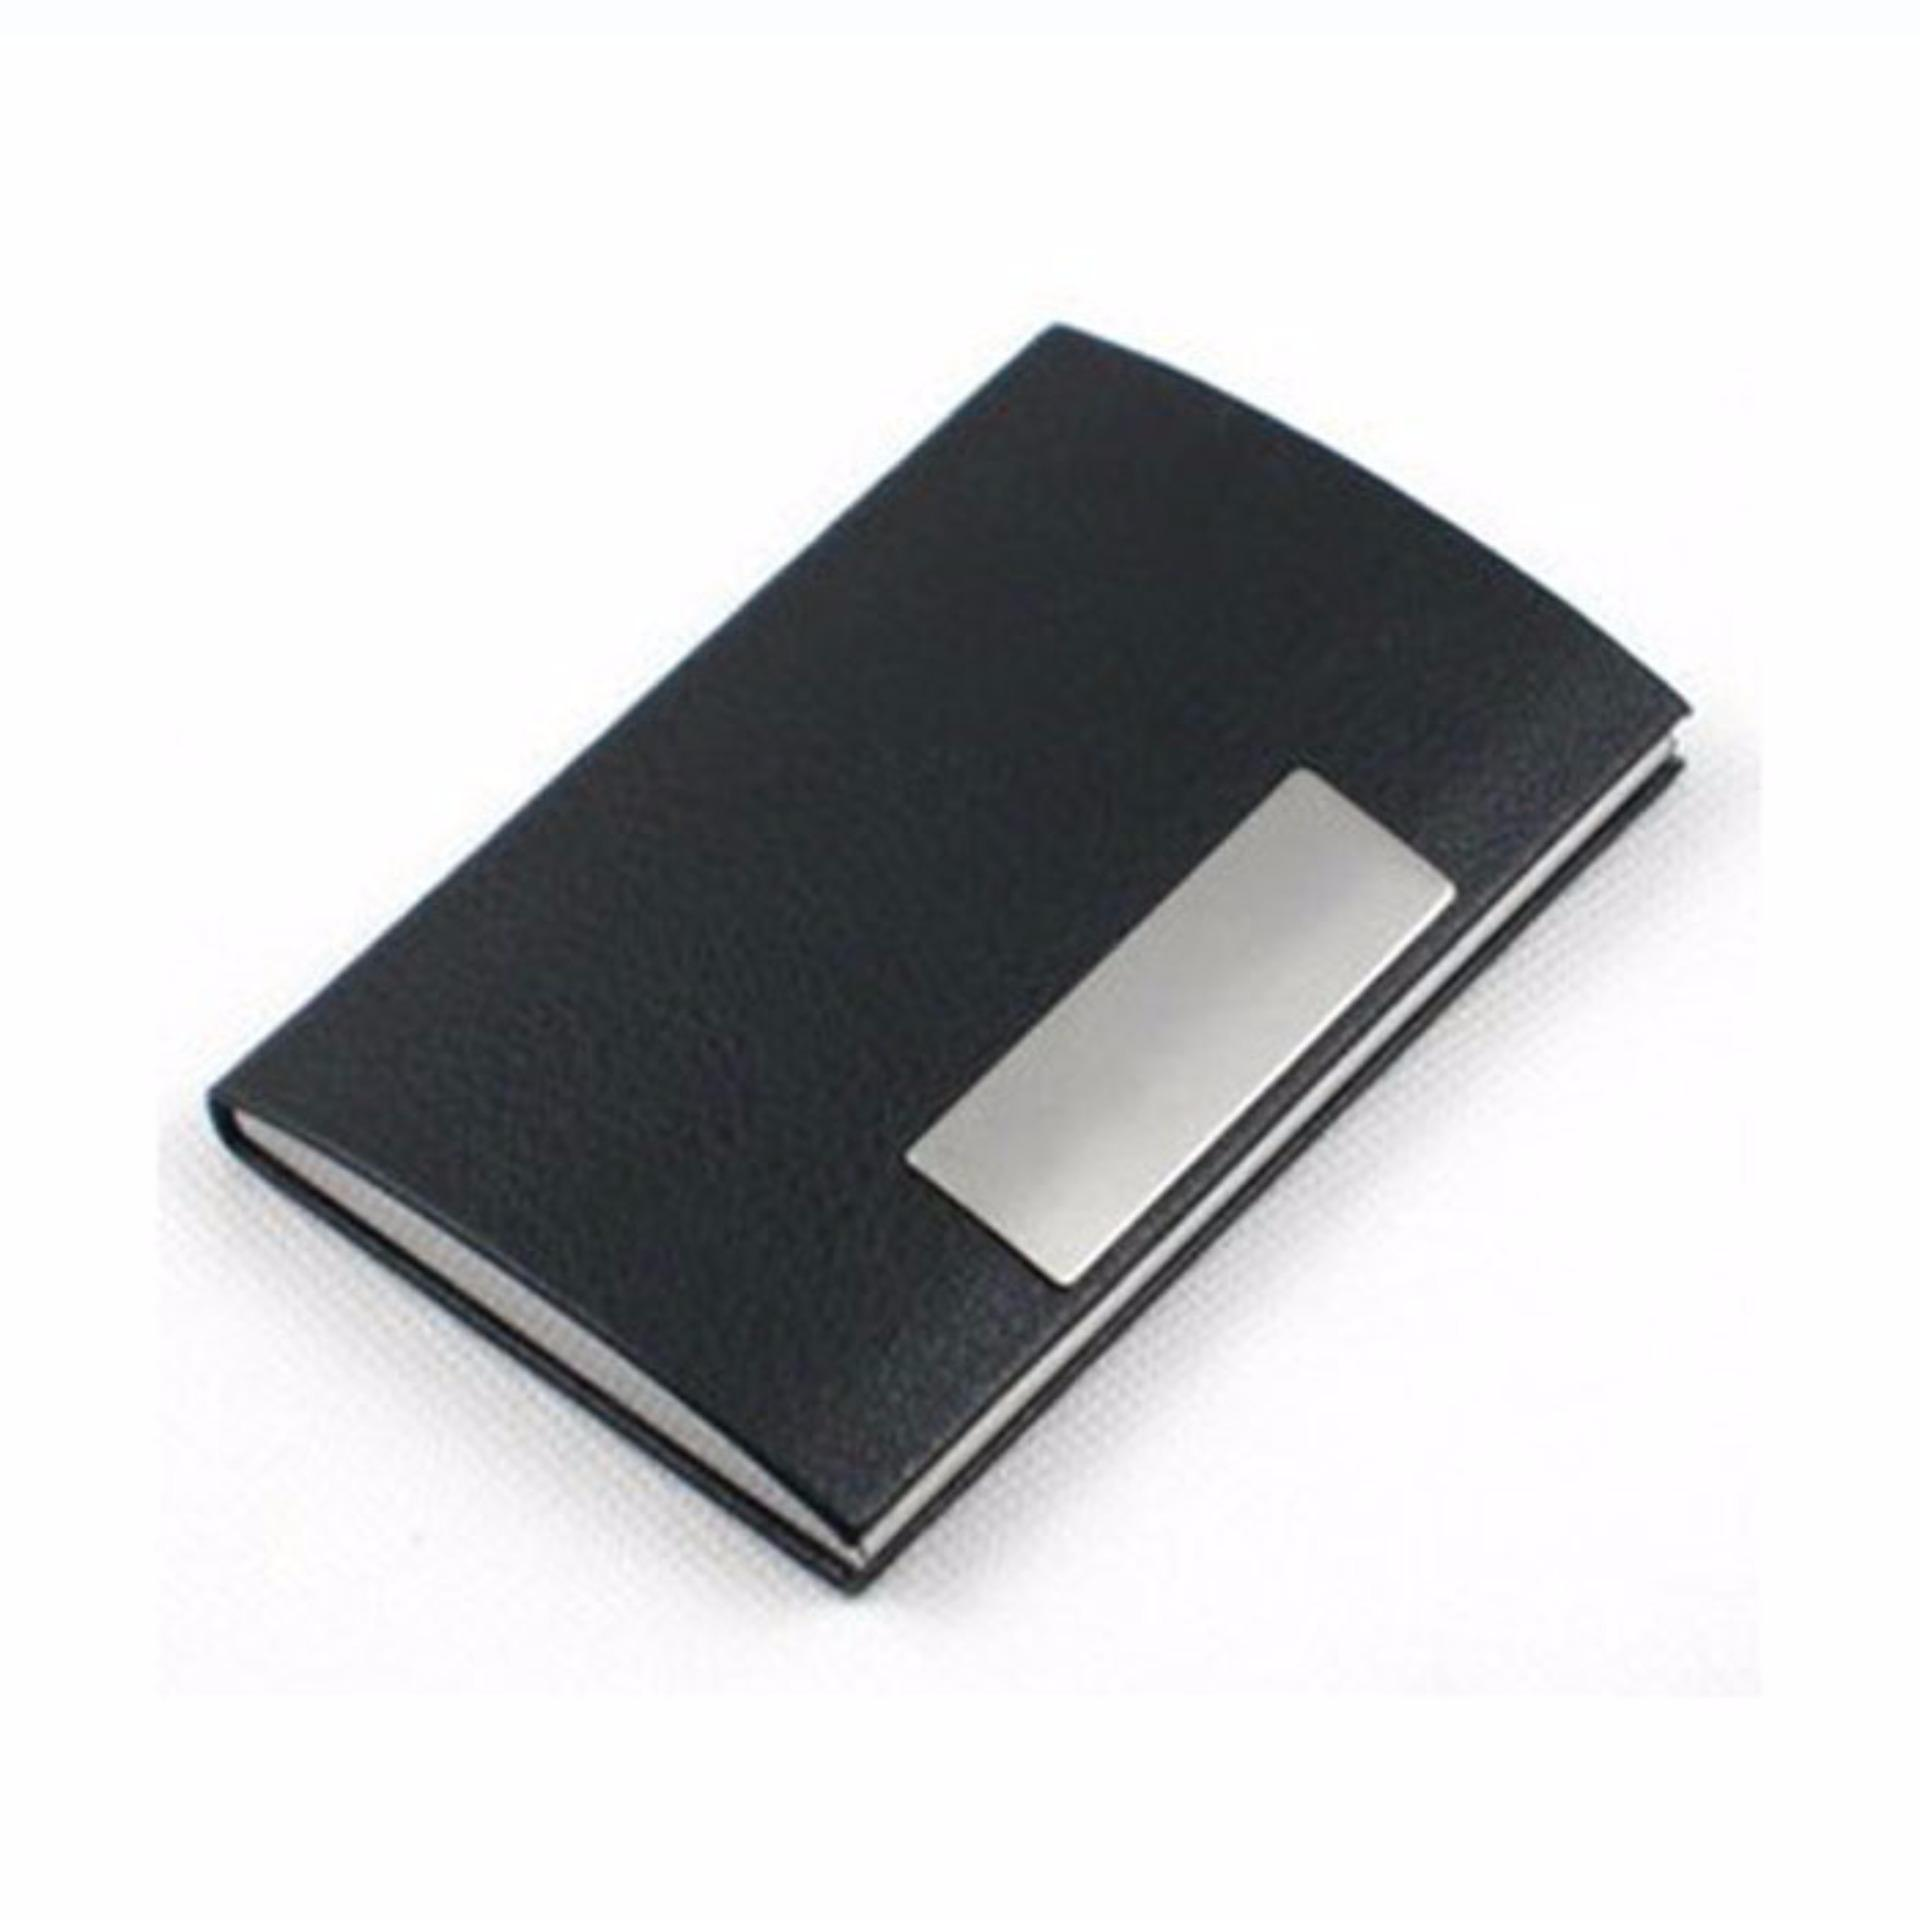 Ormano Dompet Kartu Binder Tempat Atm Kartu Kredit Ktp Business Id Name Card Wallet Water Proof Metal Aluminium Stainless Steel Holder Pocket Case Aksesoris Fashion Pria Wanita Kerja Kantor Anti Air Dan Karat Hitam Original